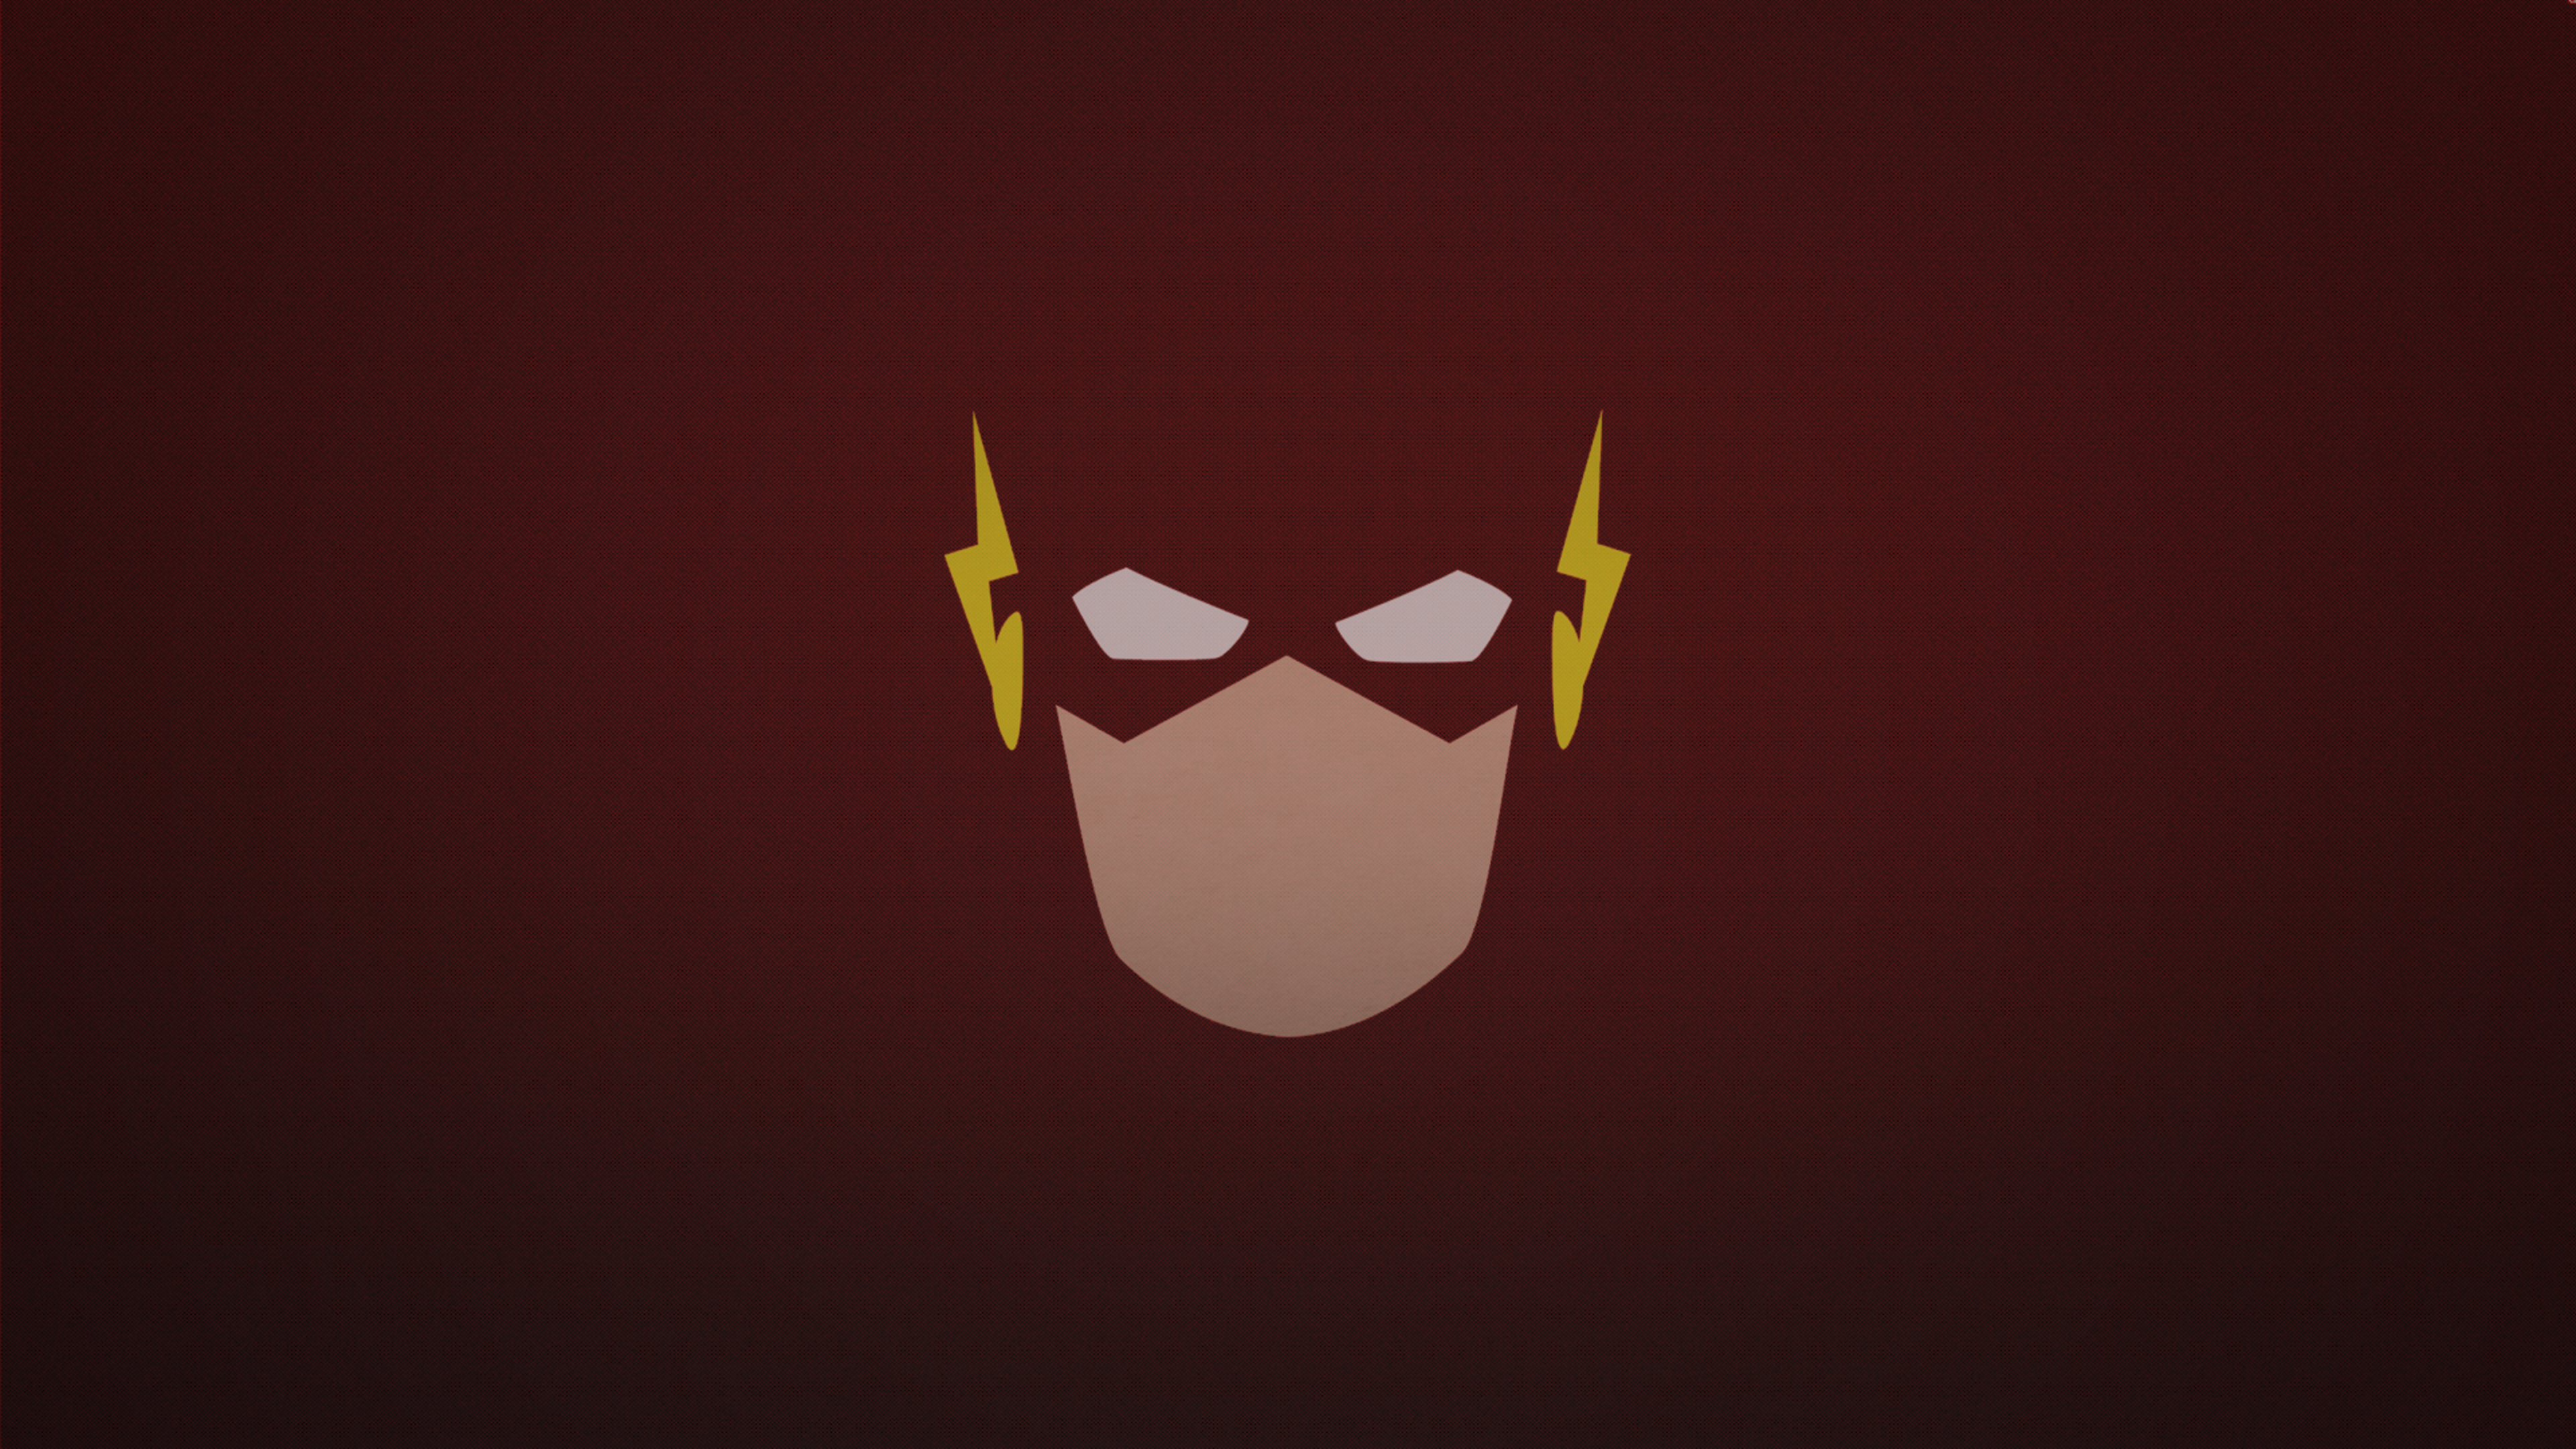 barry allen the flash wallpapers hd free download